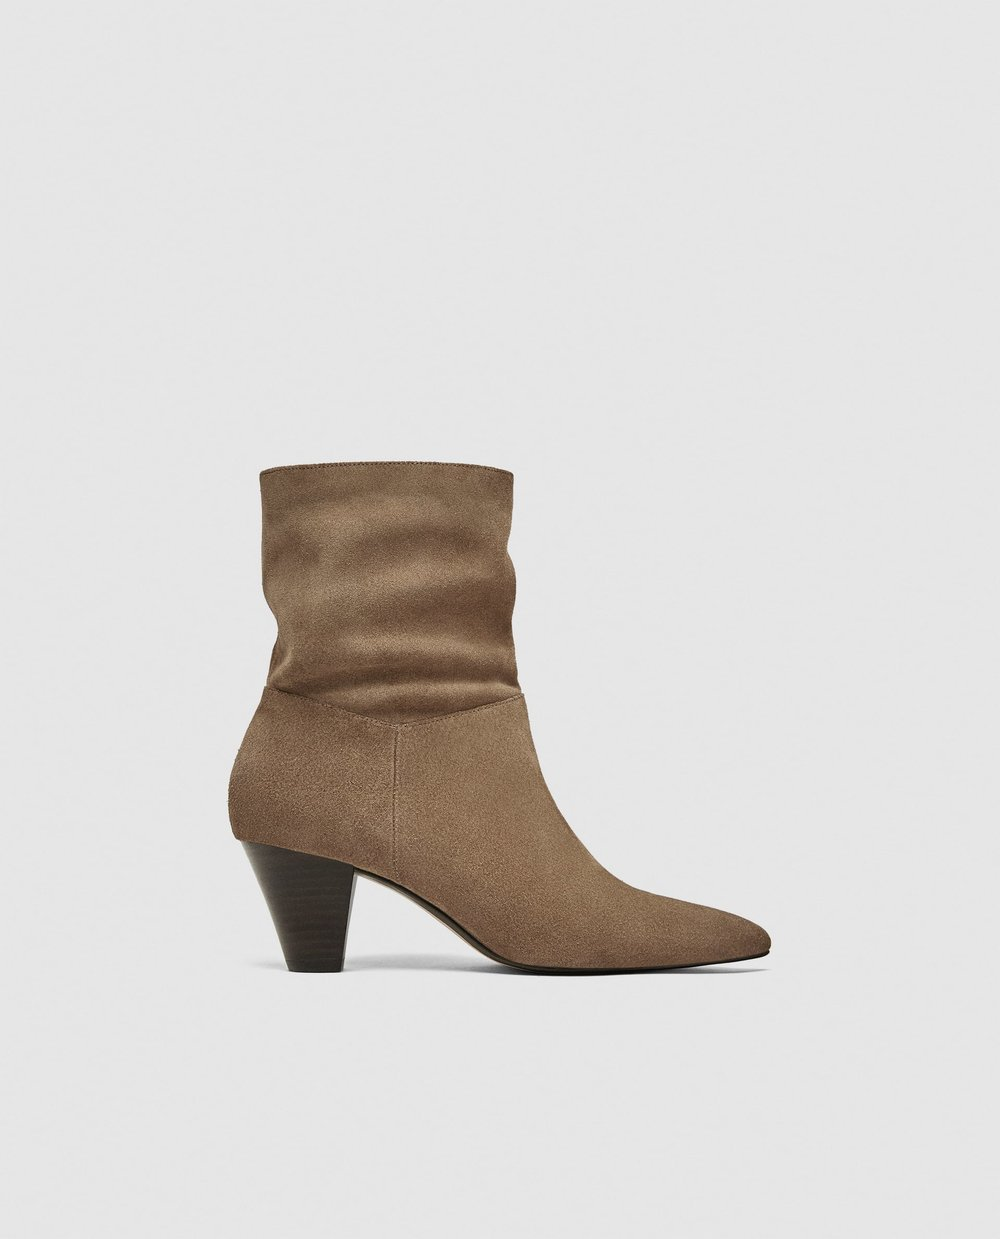 https://www.zara.com/ca/en/leather-high-heel-ankle-boots-p11106301.html?v1=6575586&v2=893503